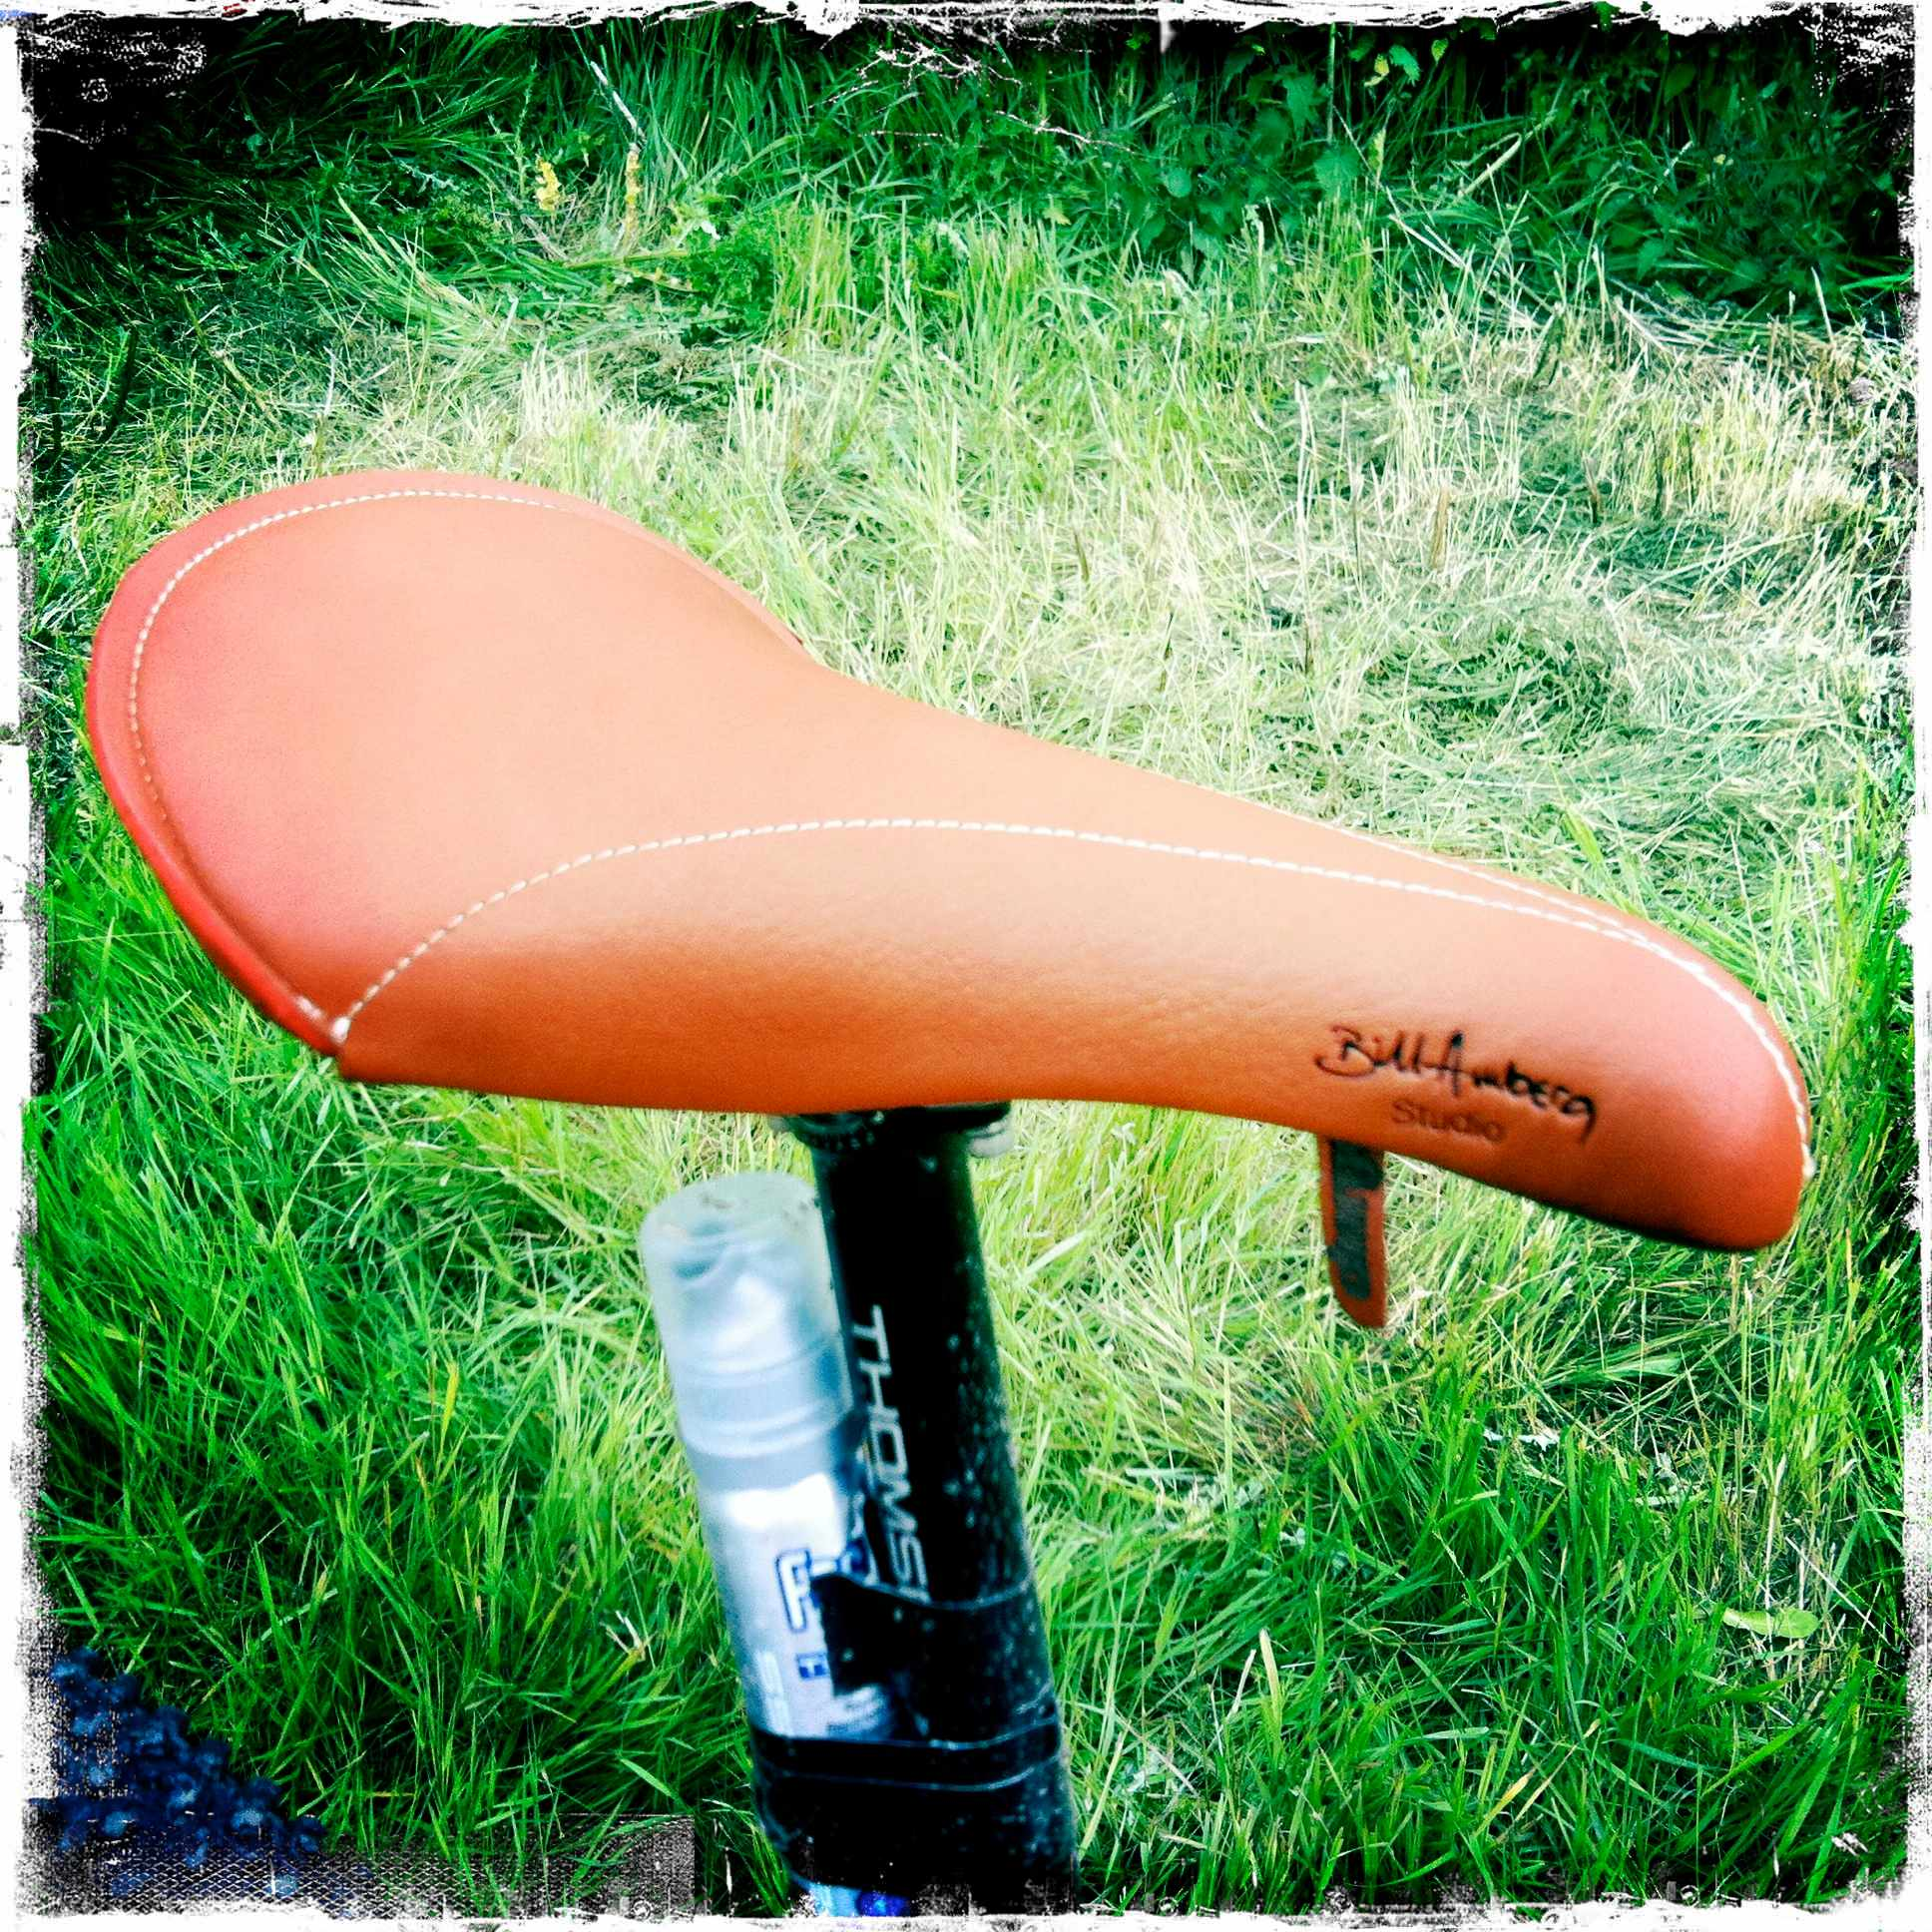 Bill Amberg's Charge saddle collaboration. Class.